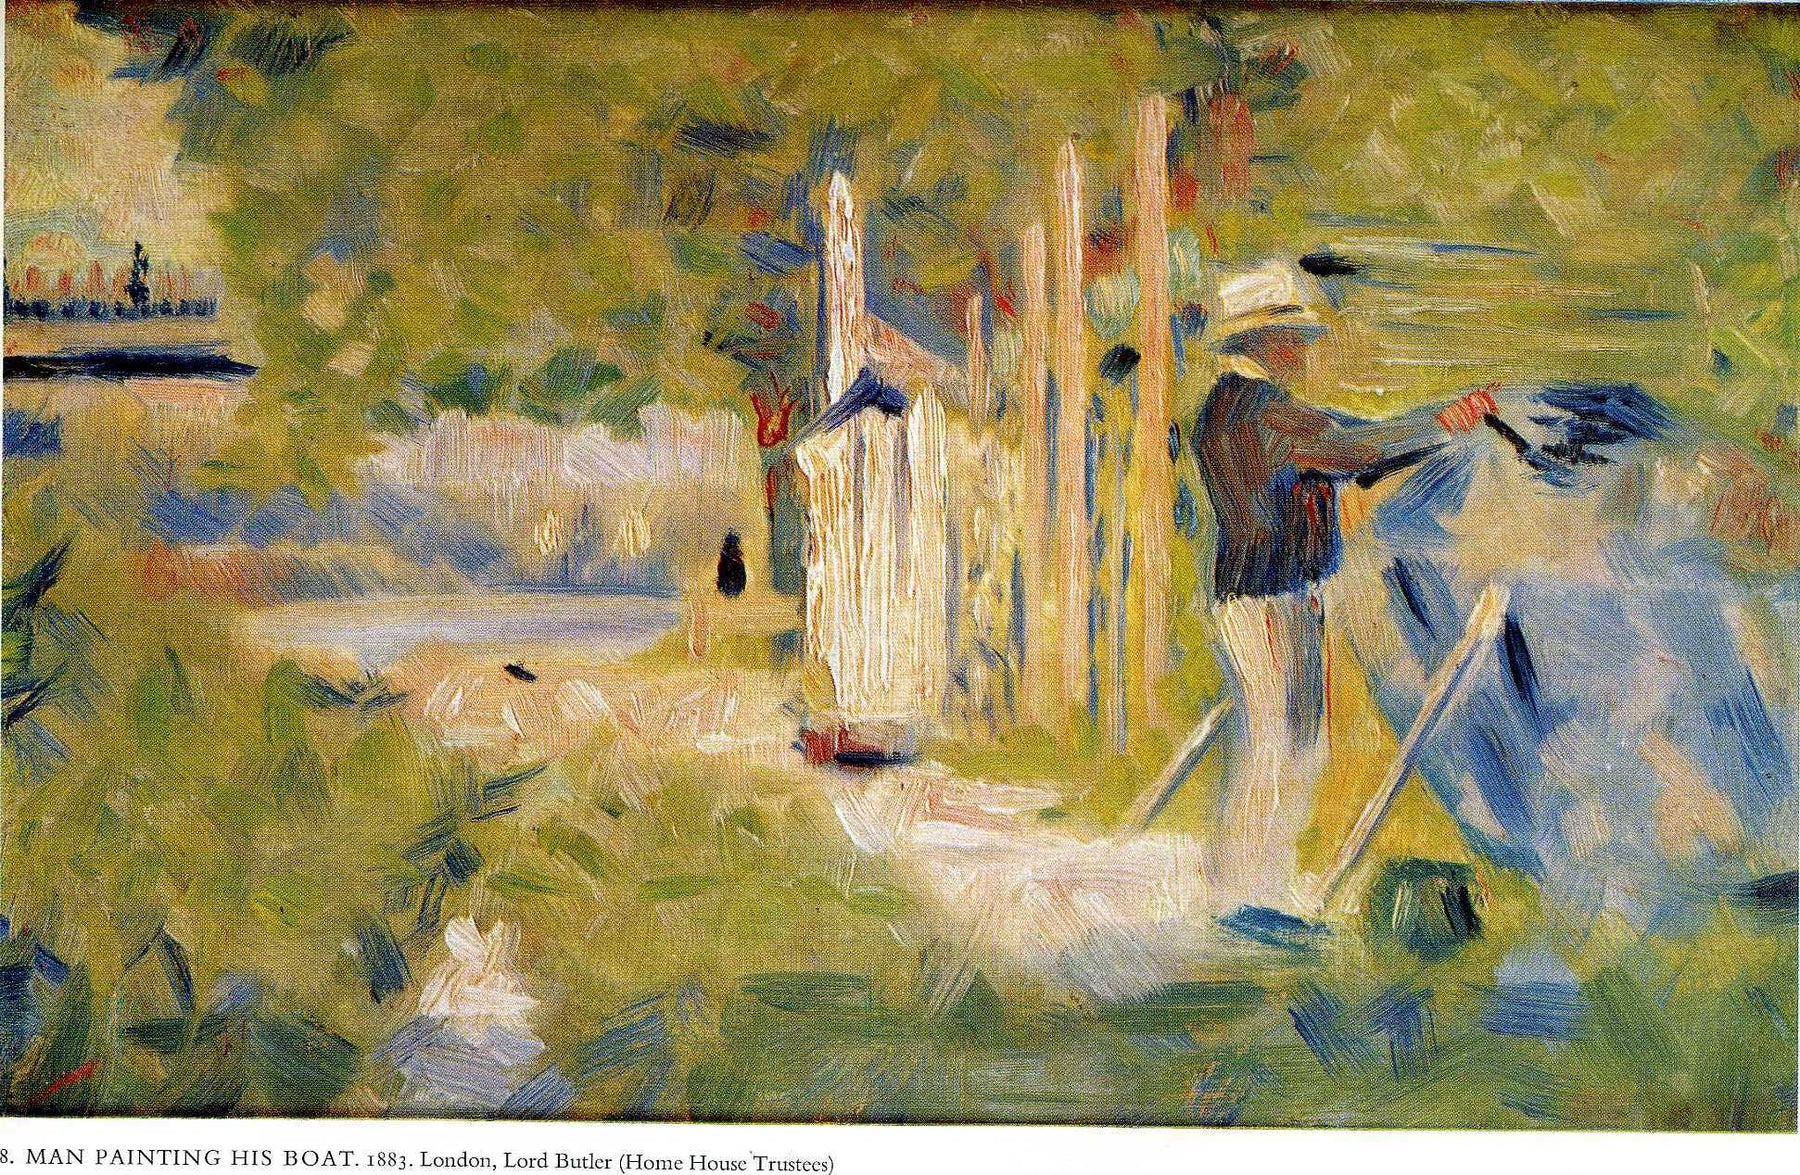 Man Painting his Boat by Georges Seurat Reproduction Painting by Blue Surf Art